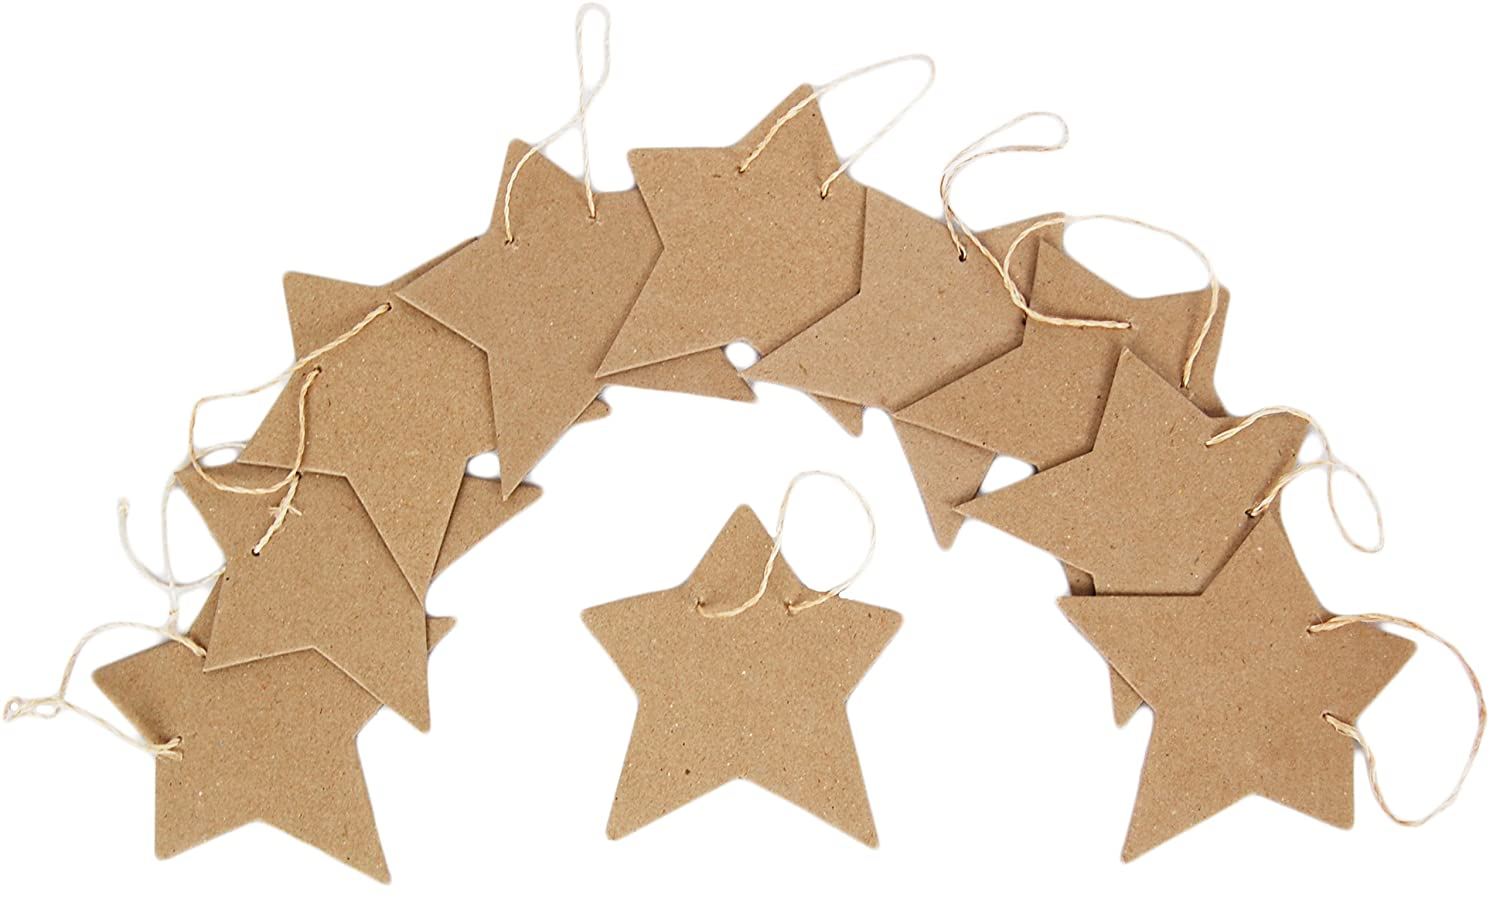 Country Love Crafts Star Shaped Hanging Tags Papier Mache, Pack of 10 CLP1057